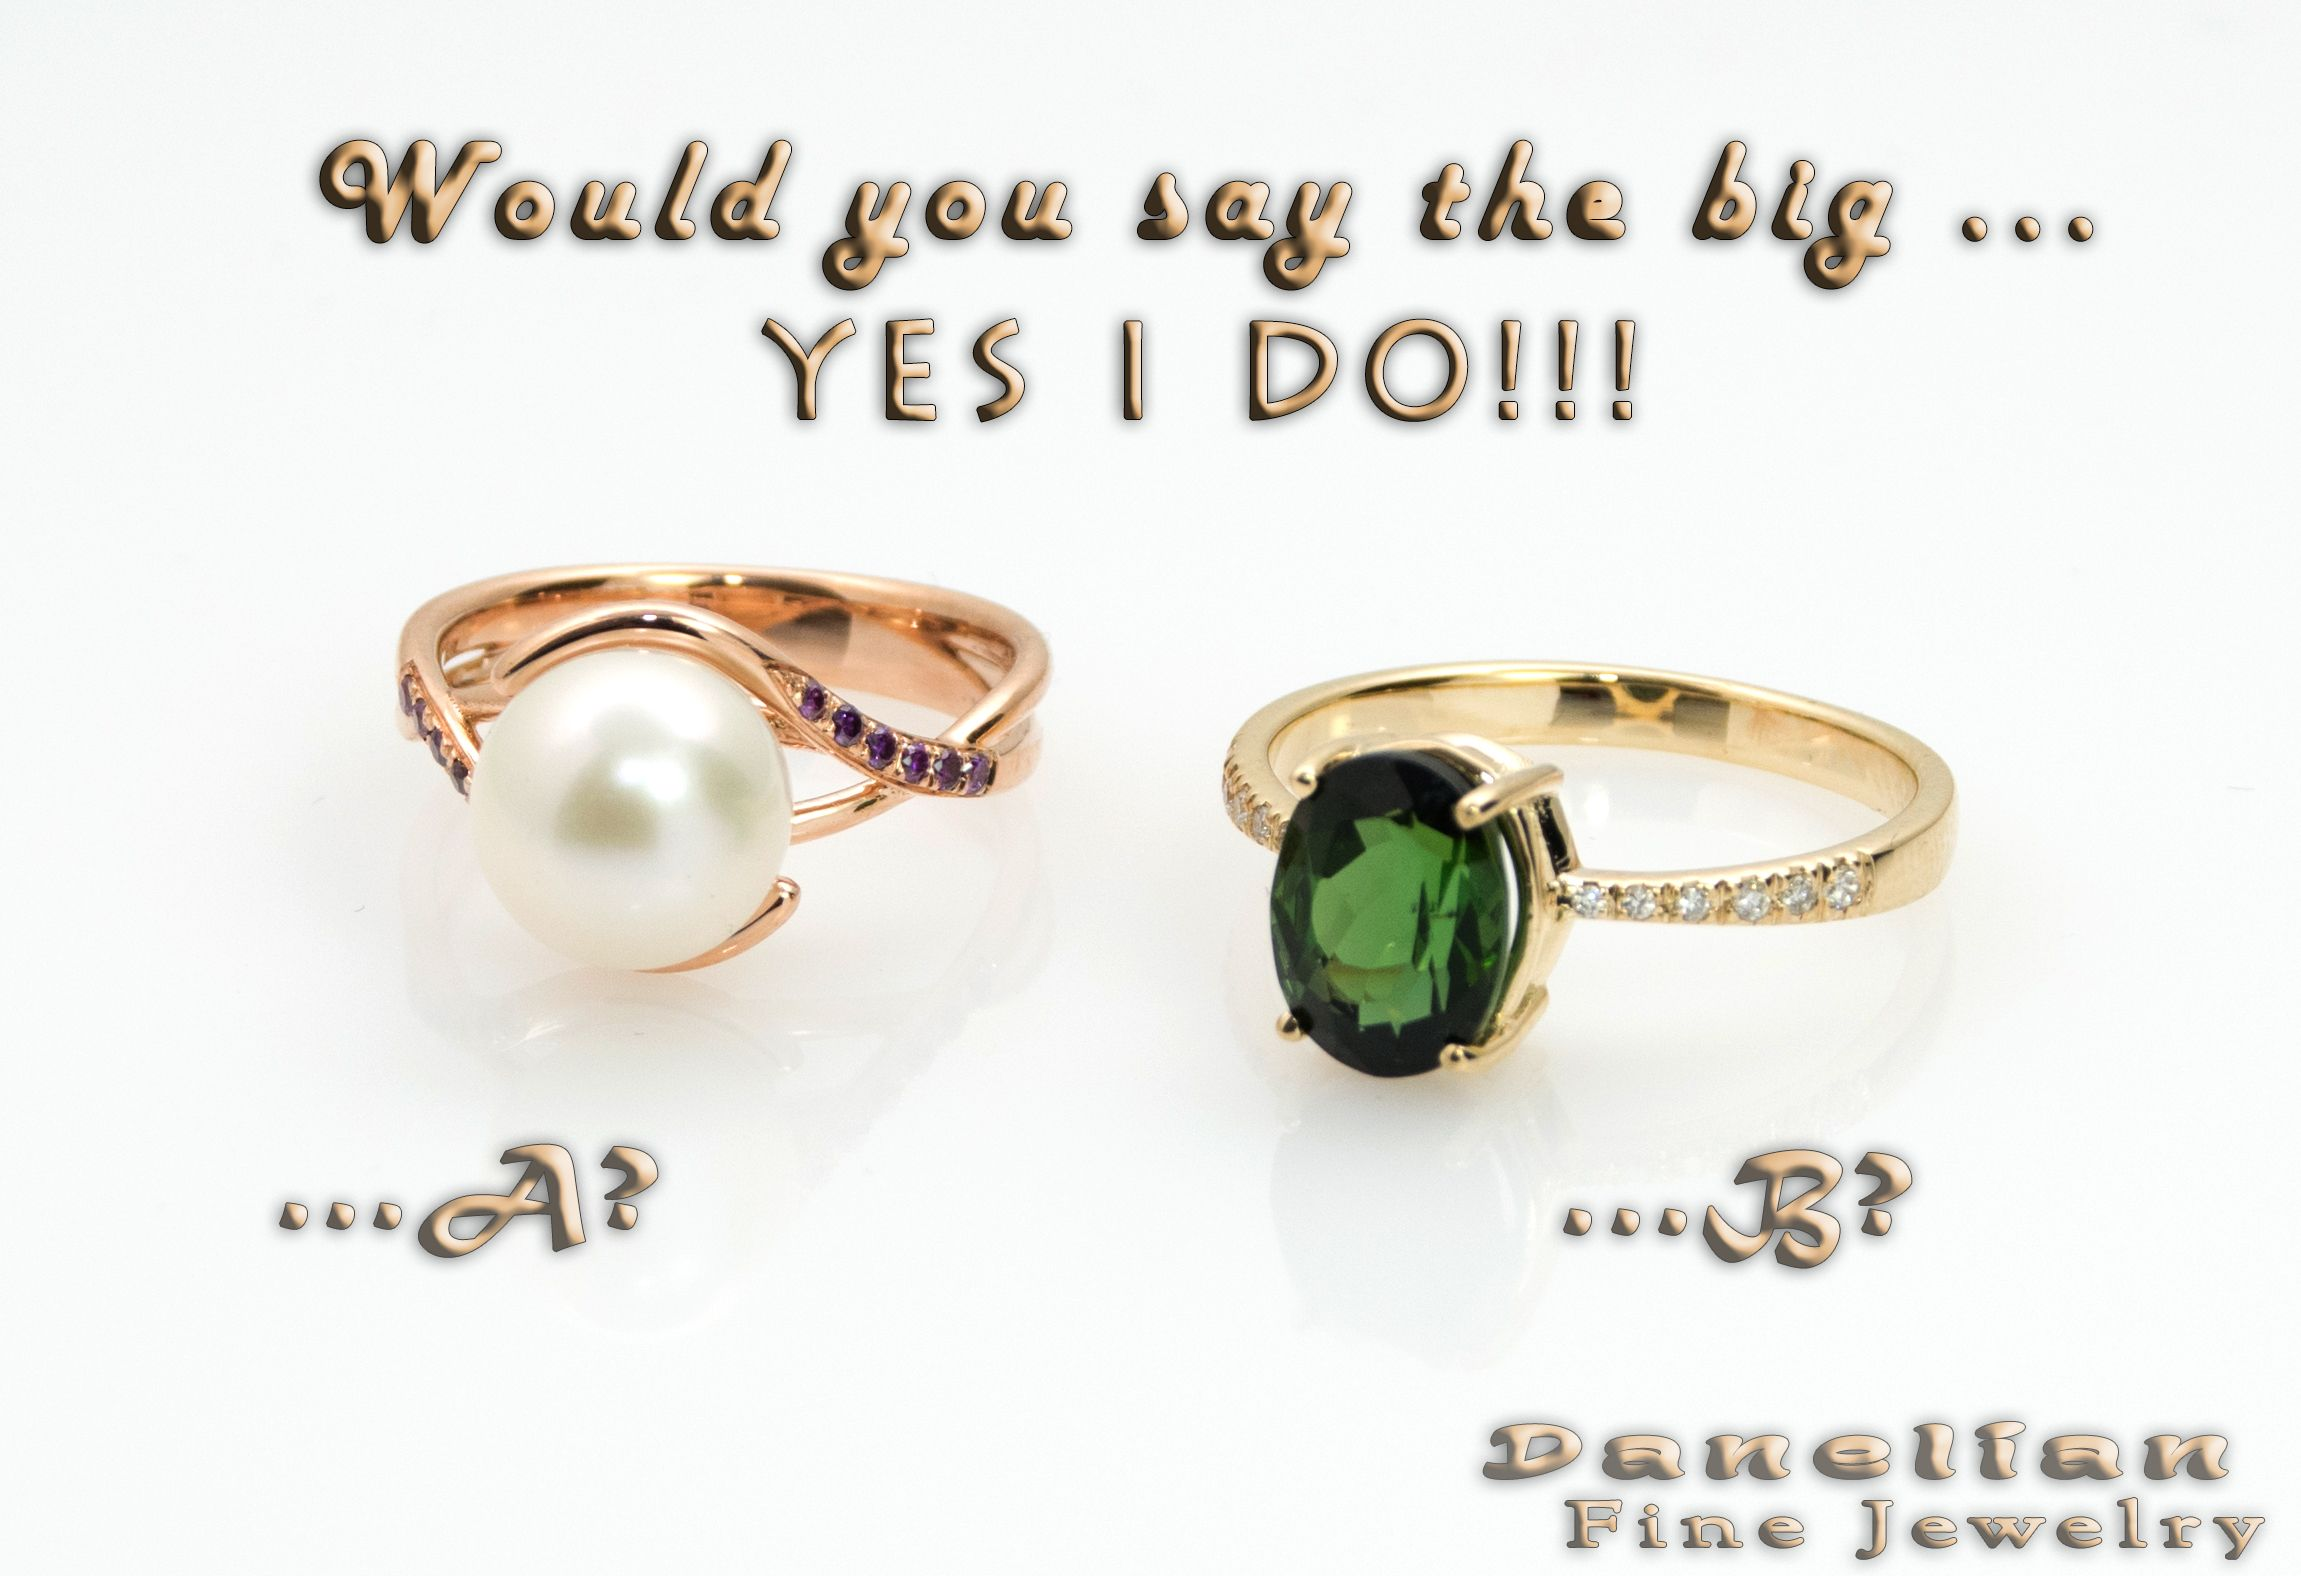 Both jewelry rings created and delivers within 10 days from our shop